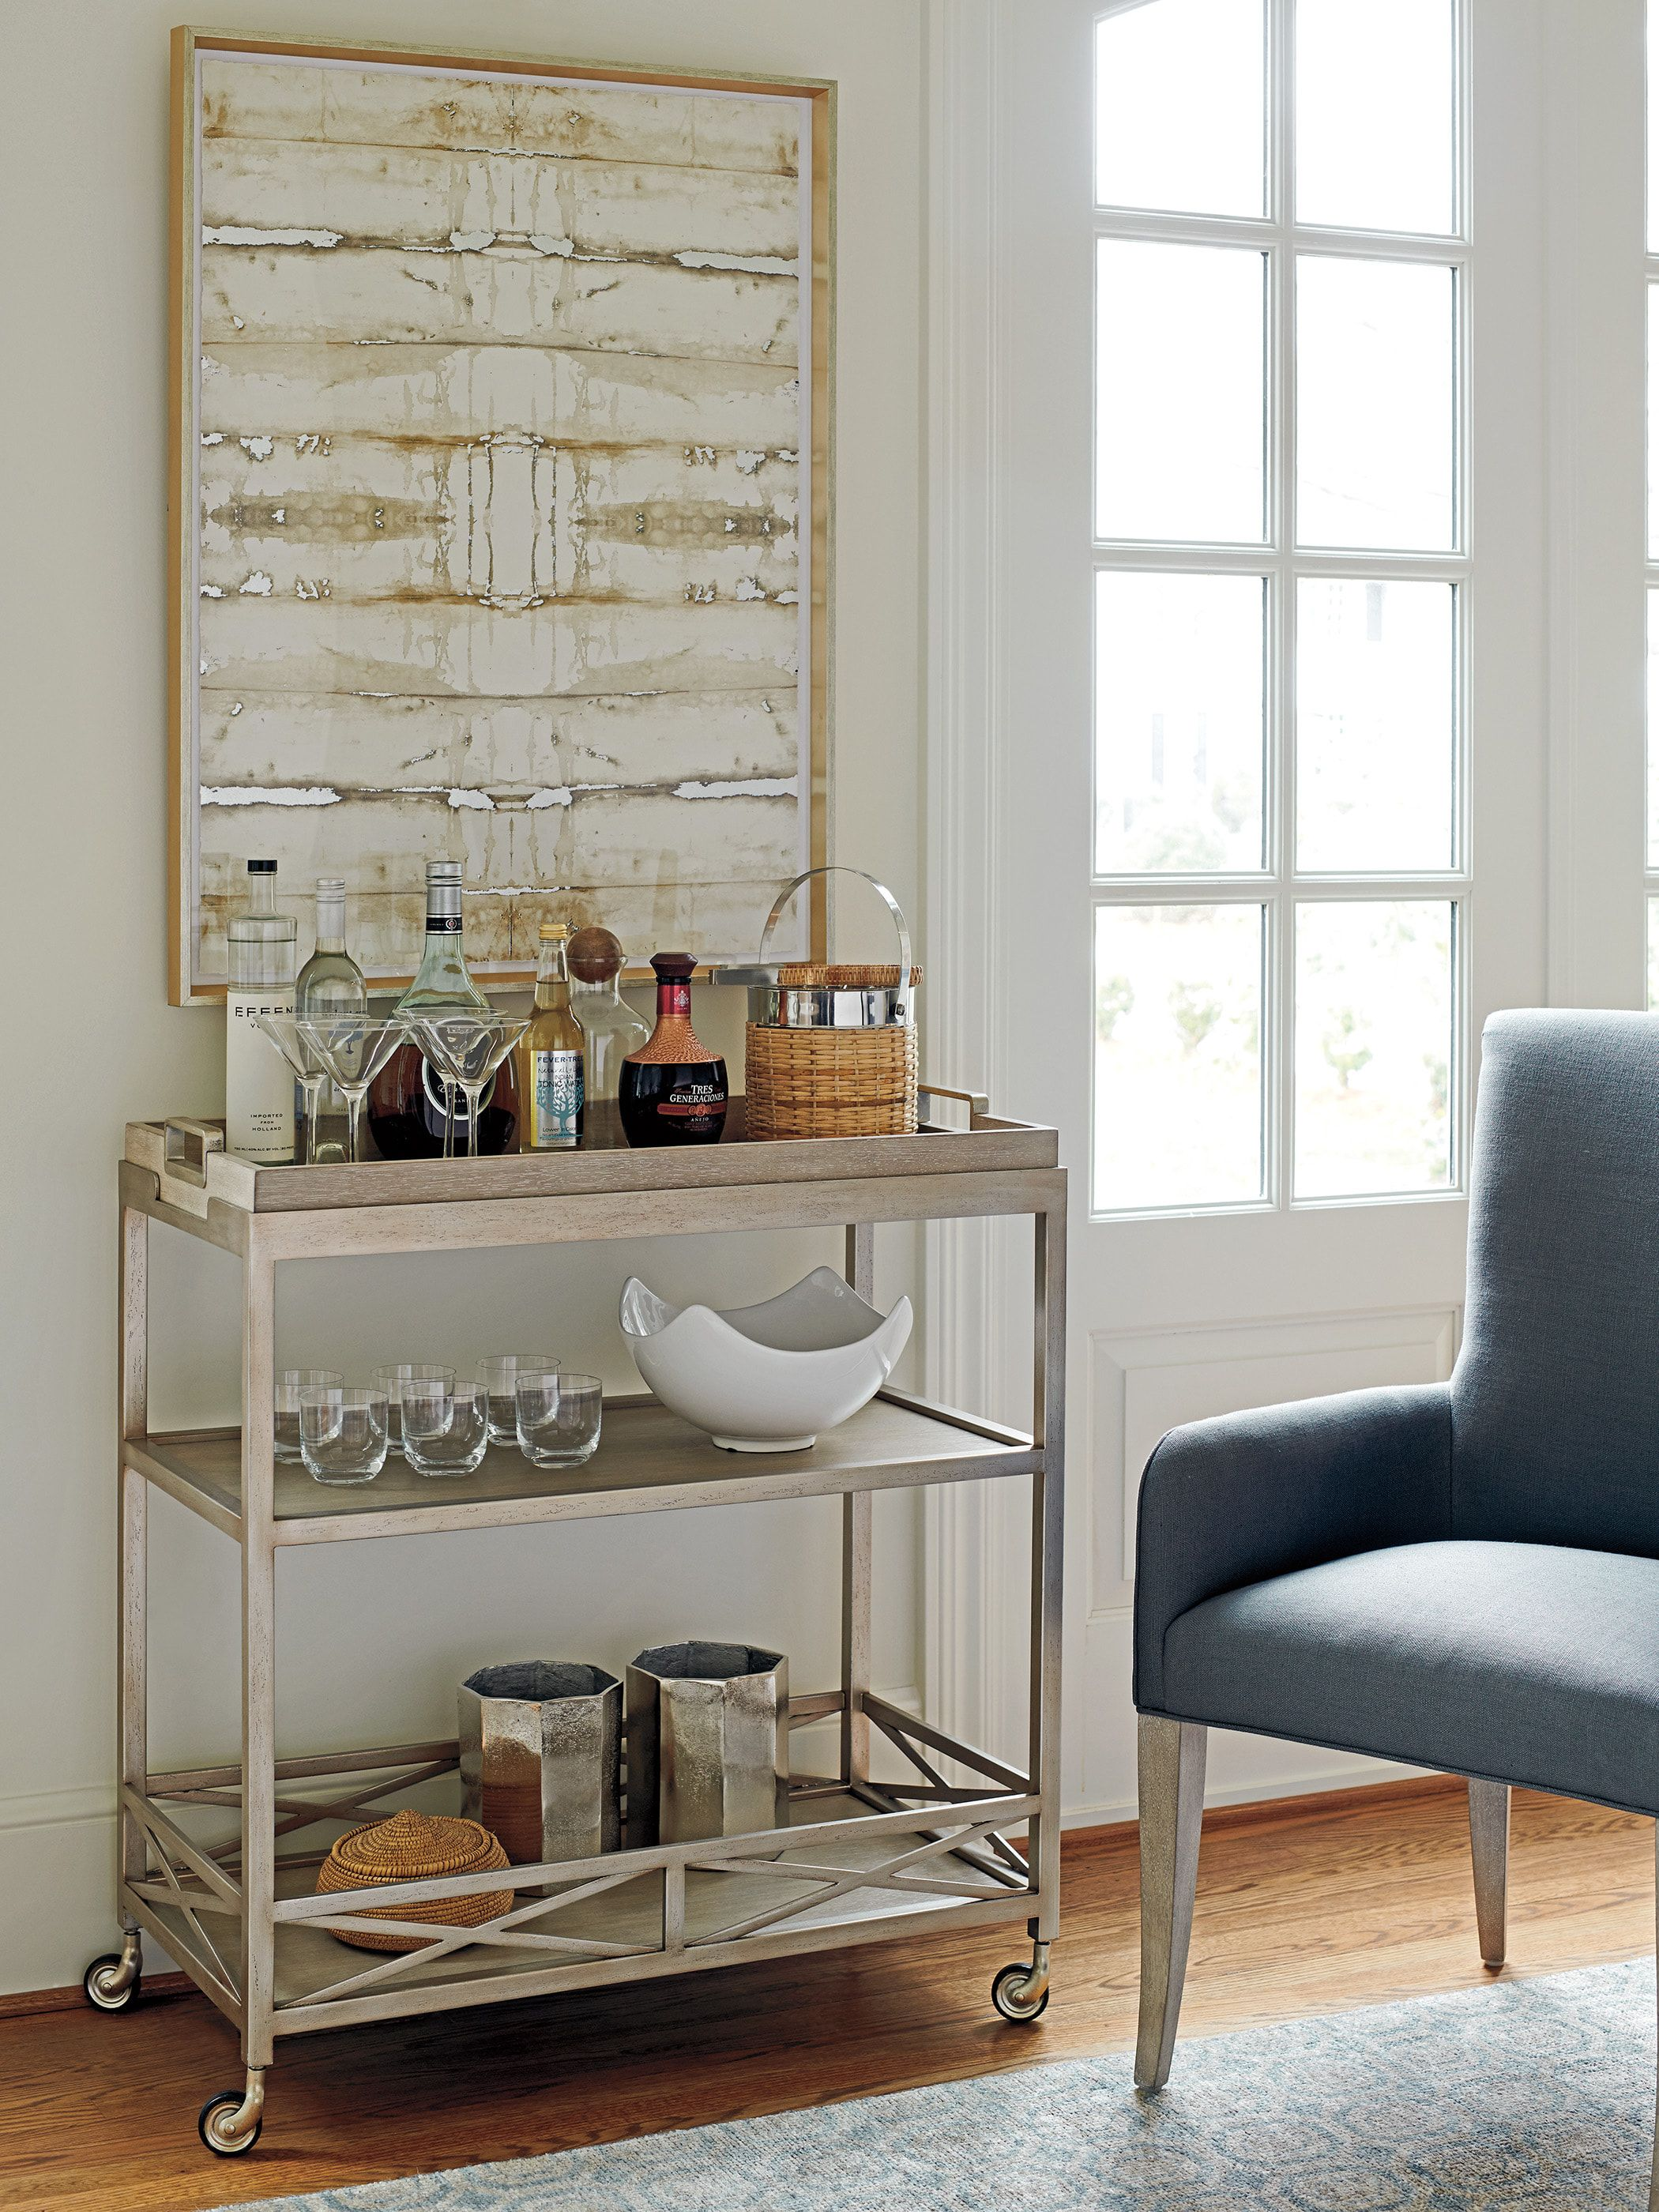 The Anacapa Metal Bar Cart from Barclay Butera would be a great transitional addition to your home.  The design of this transitional piece makes it a statement piece for years to come.  The quality paired with the natural finish makes for a quality piece of furniture.